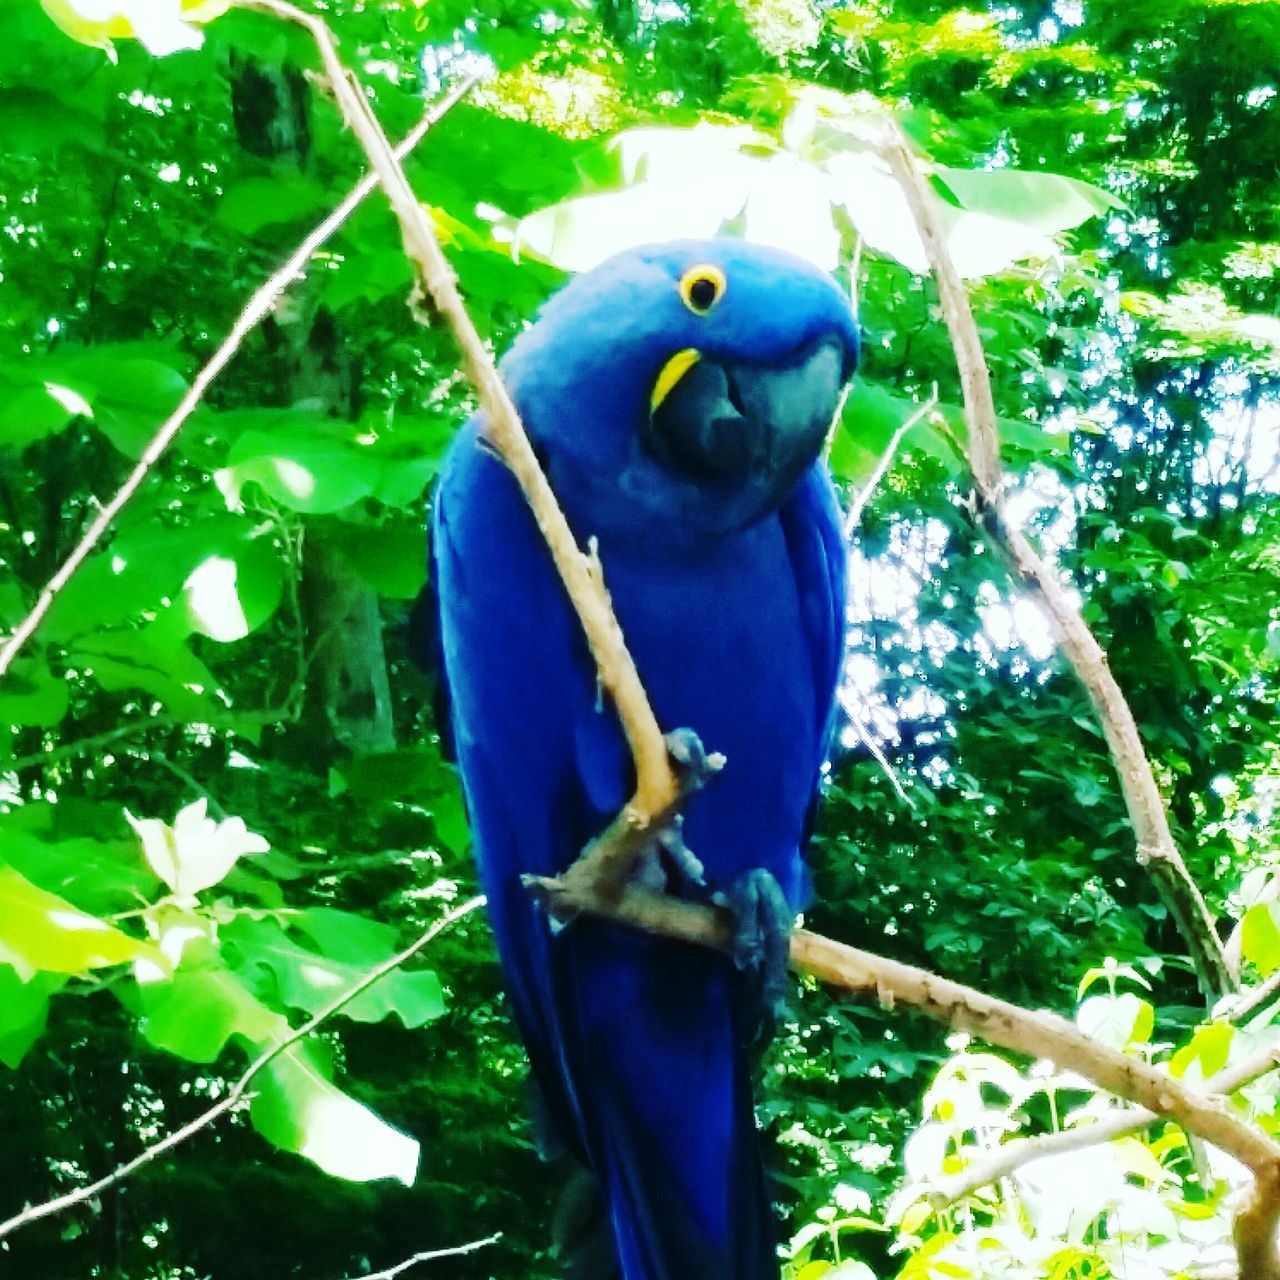 animal themes, parrot, animals in the wild, one animal, perching, bird, blue, no people, tree, animal wildlife, green color, outdoors, nature, day, leaf, gold and blue macaw, beauty in nature, macaw, close-up